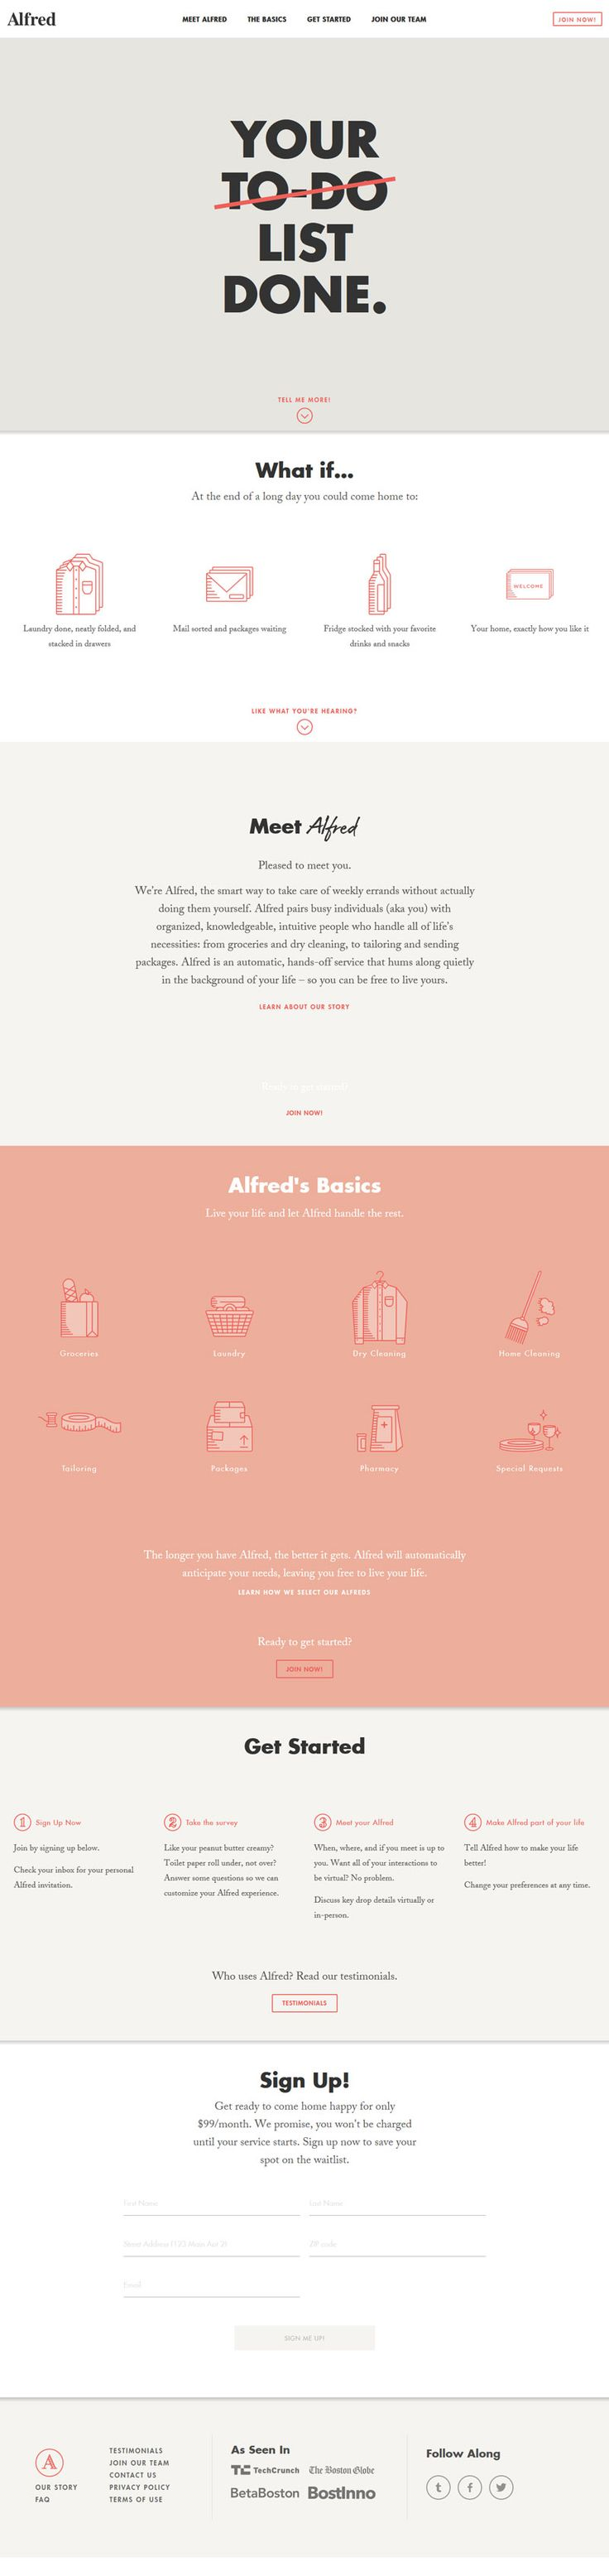 Alfred minimal design website i love the color pallet and one